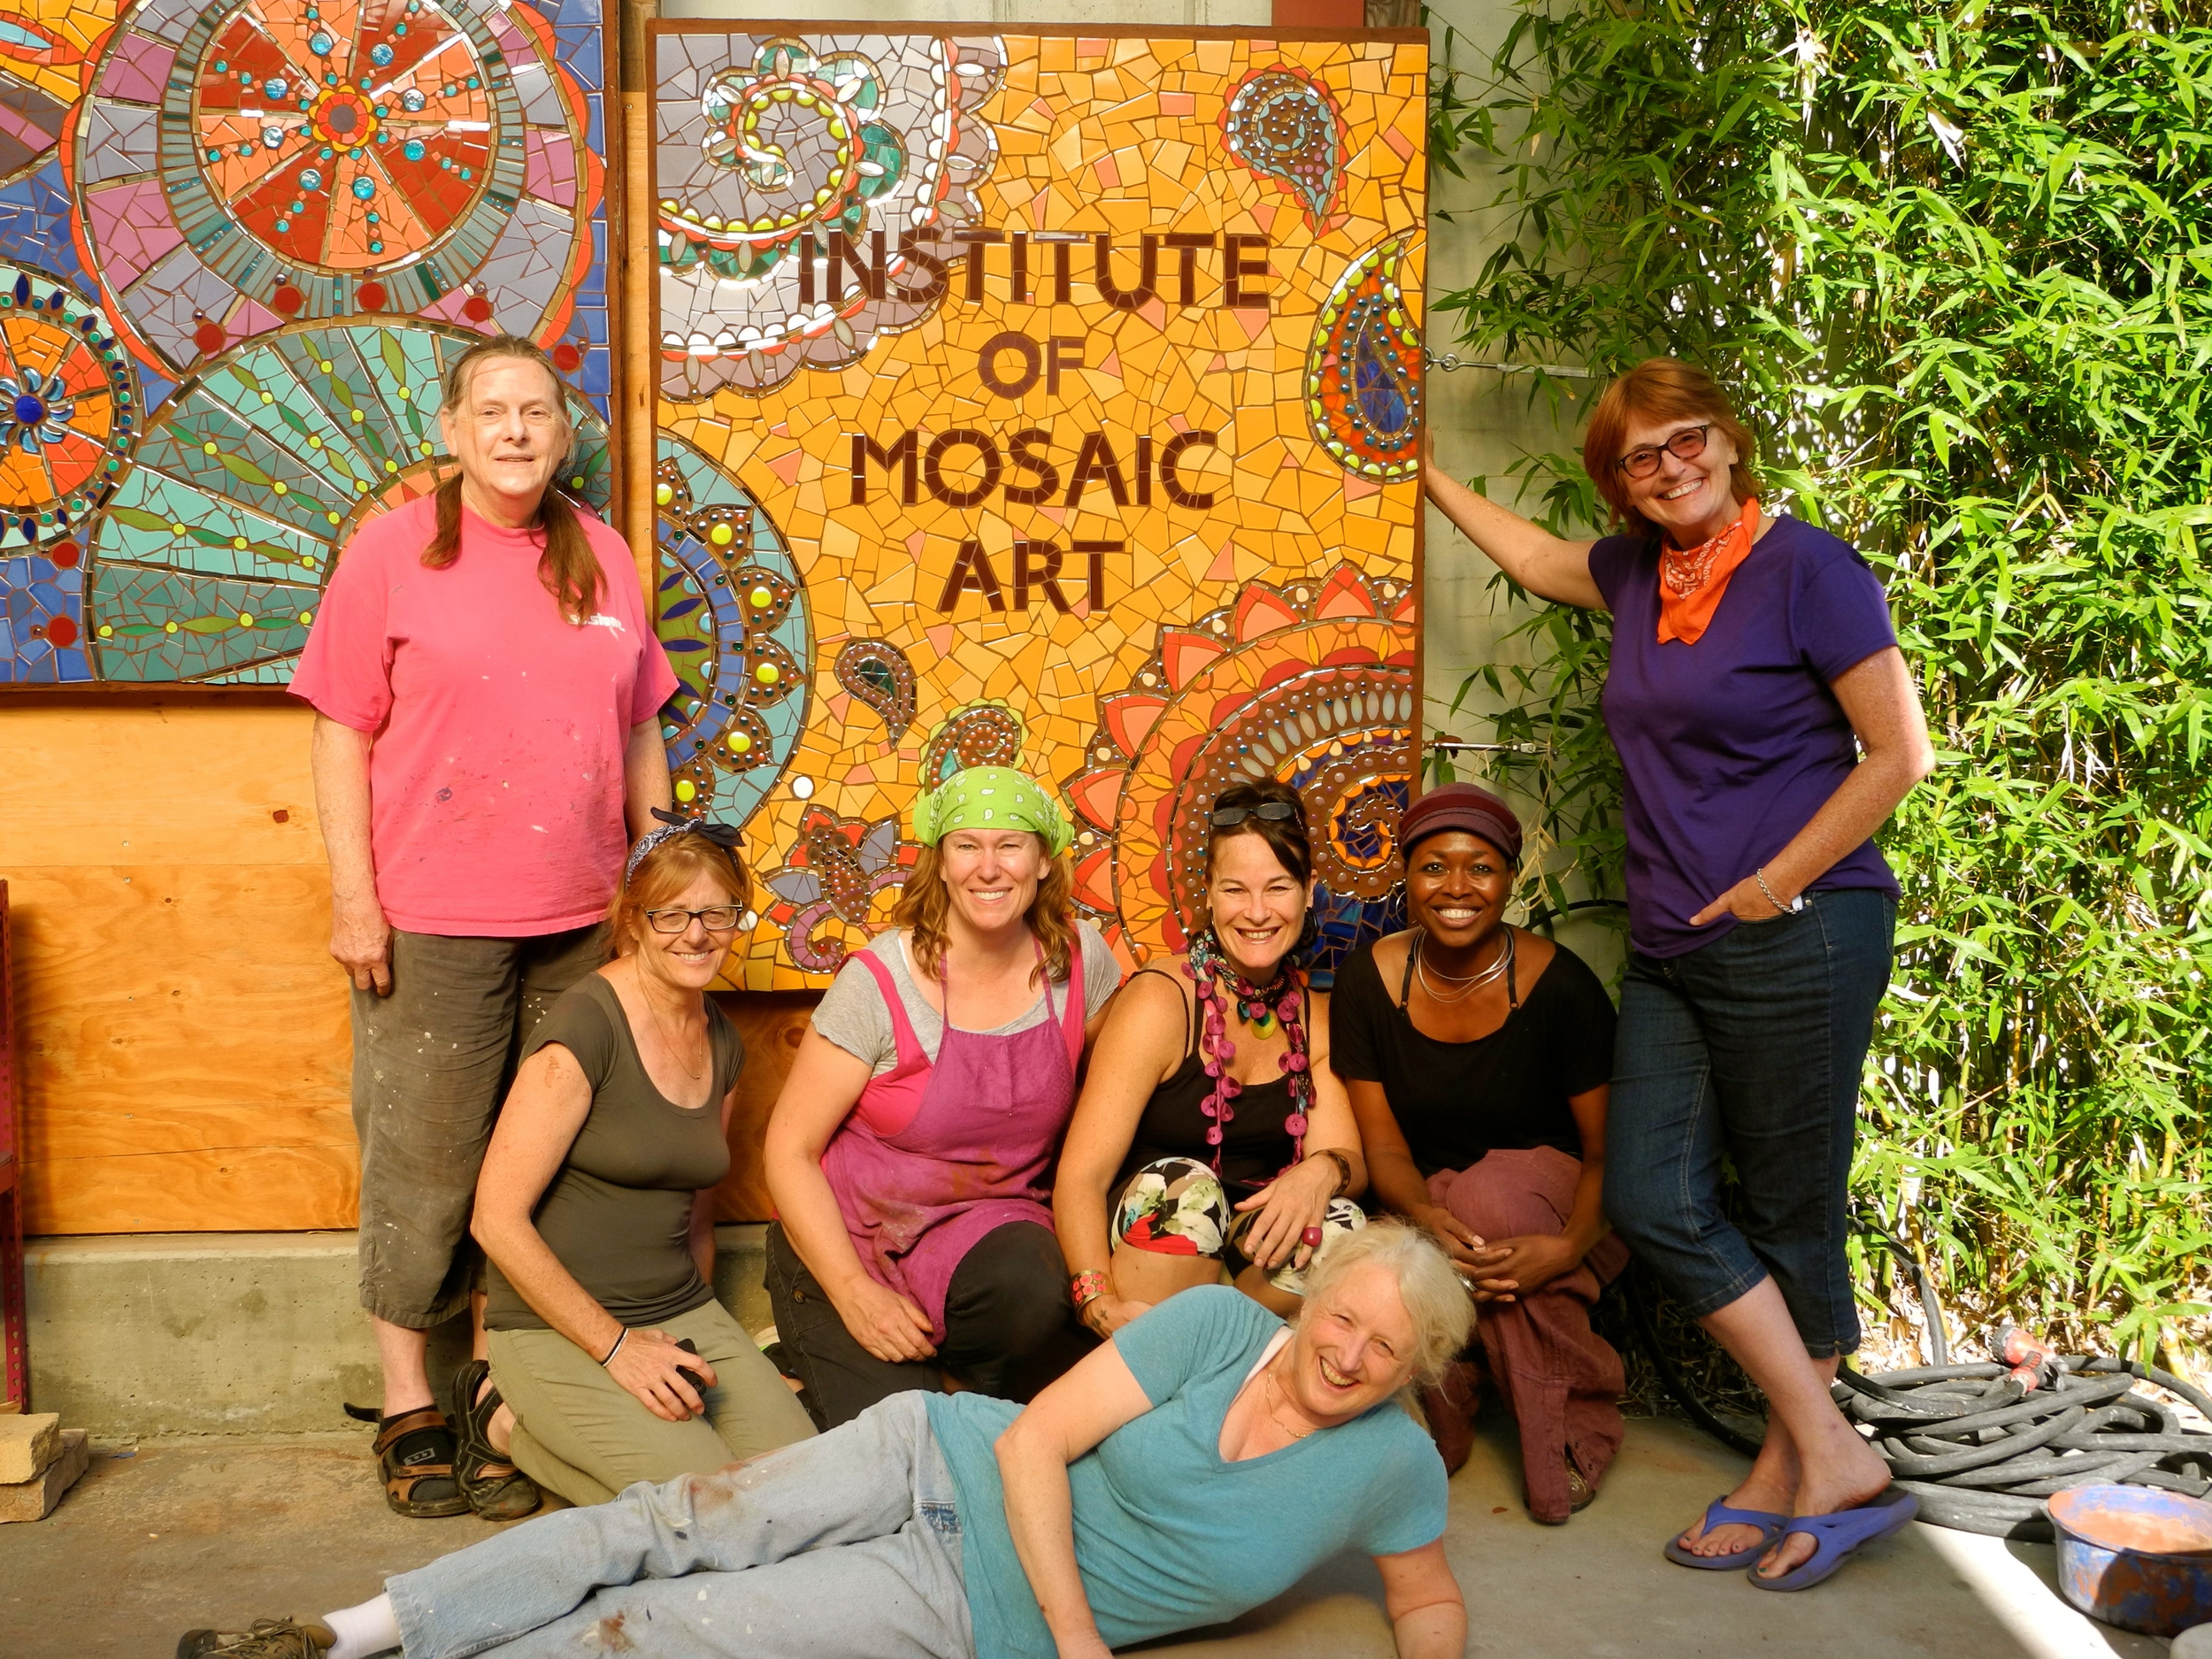 Laurel True with me and my classmates. We were the production team for the creation and installation of Laurel True's mosaic mural at the Institute of Mosaic Art in Berkeley, CA. August 18, 2014.